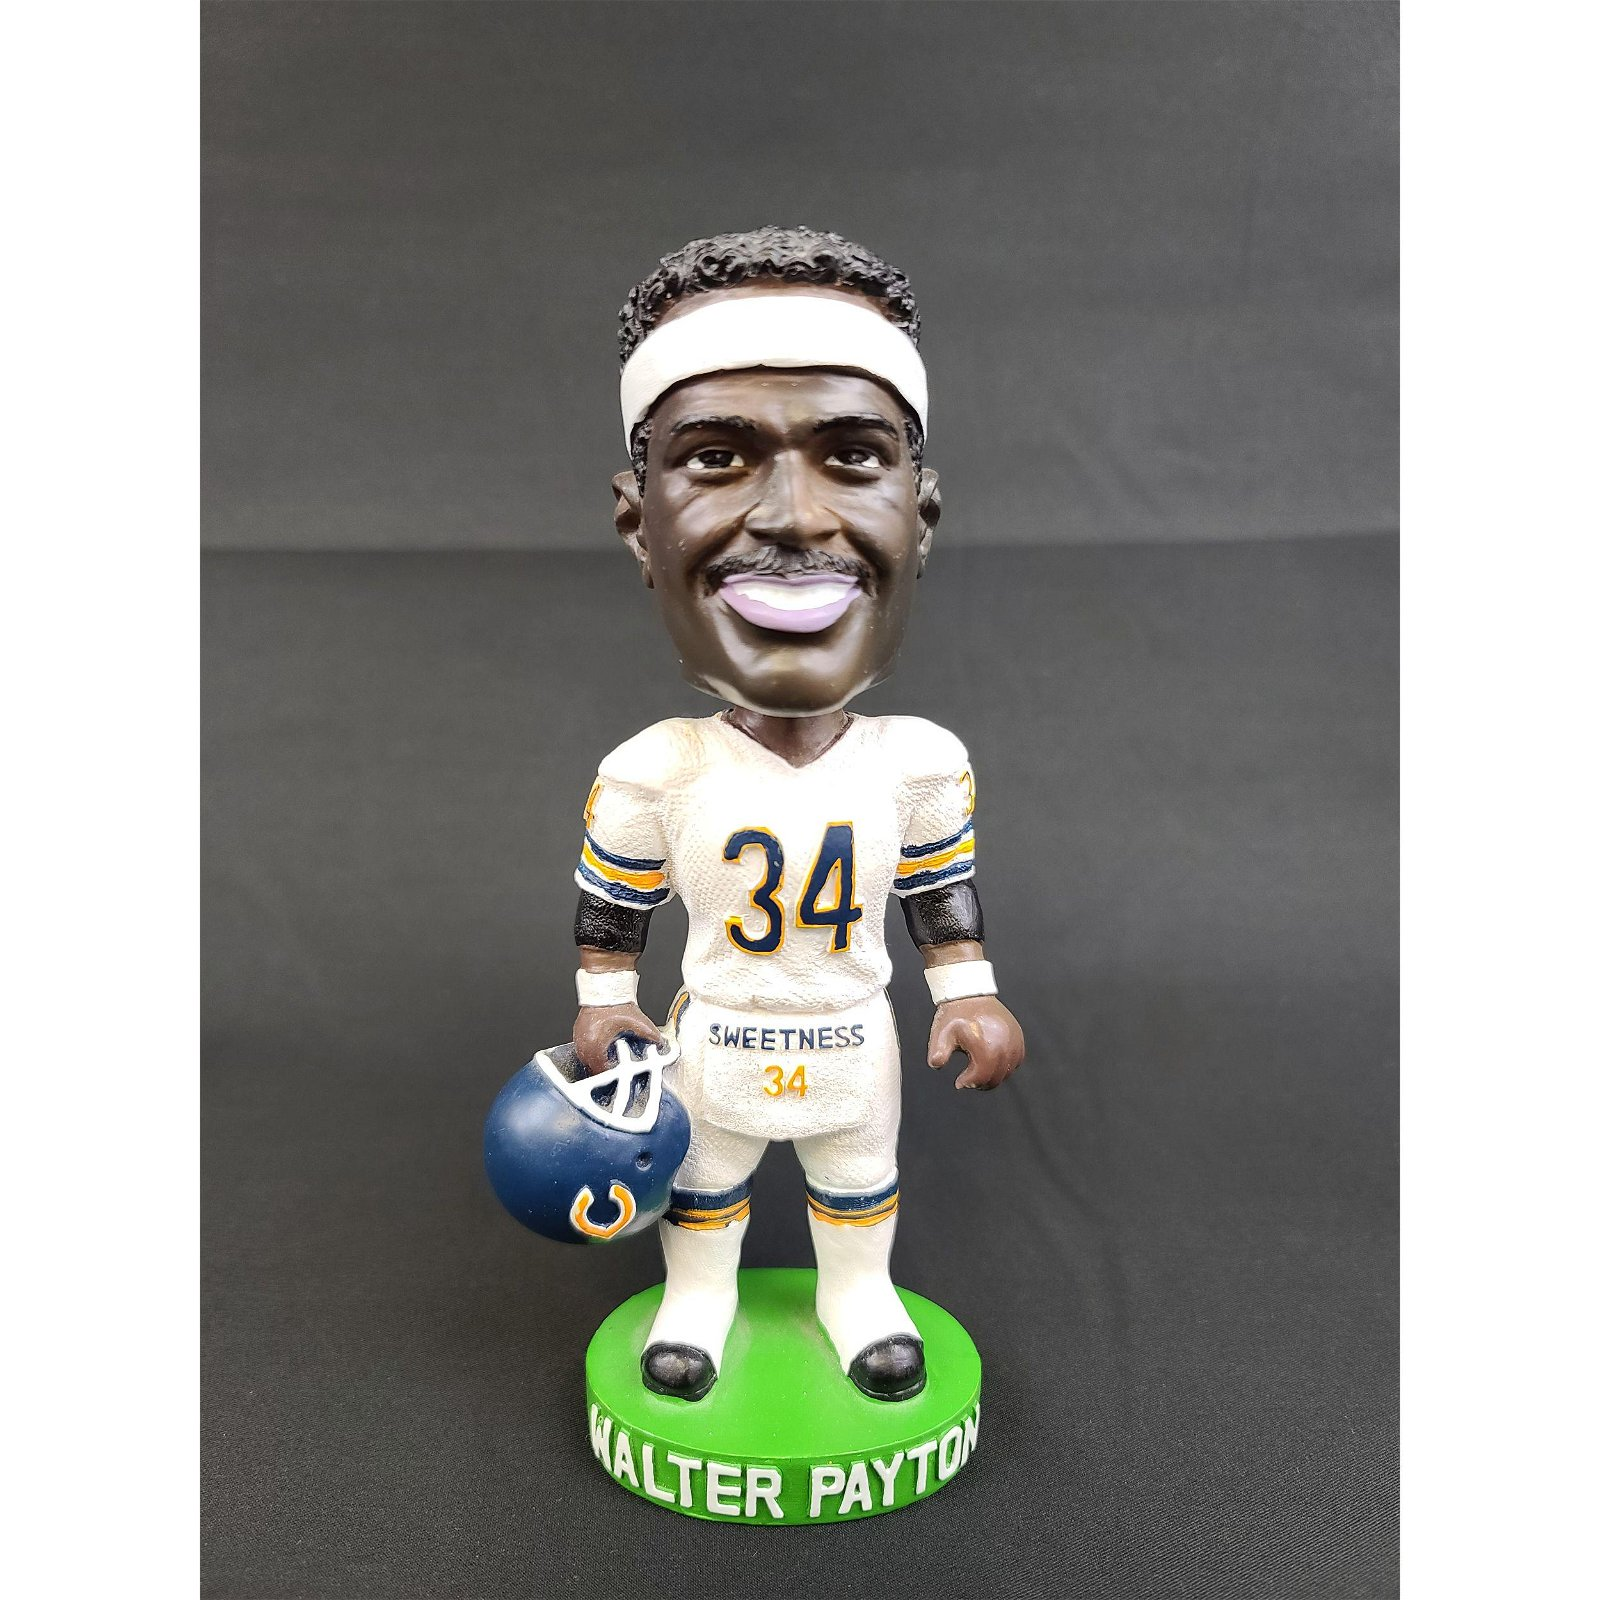 WALTER PAYTON Chicago Bears Bobblehead Limited Edition